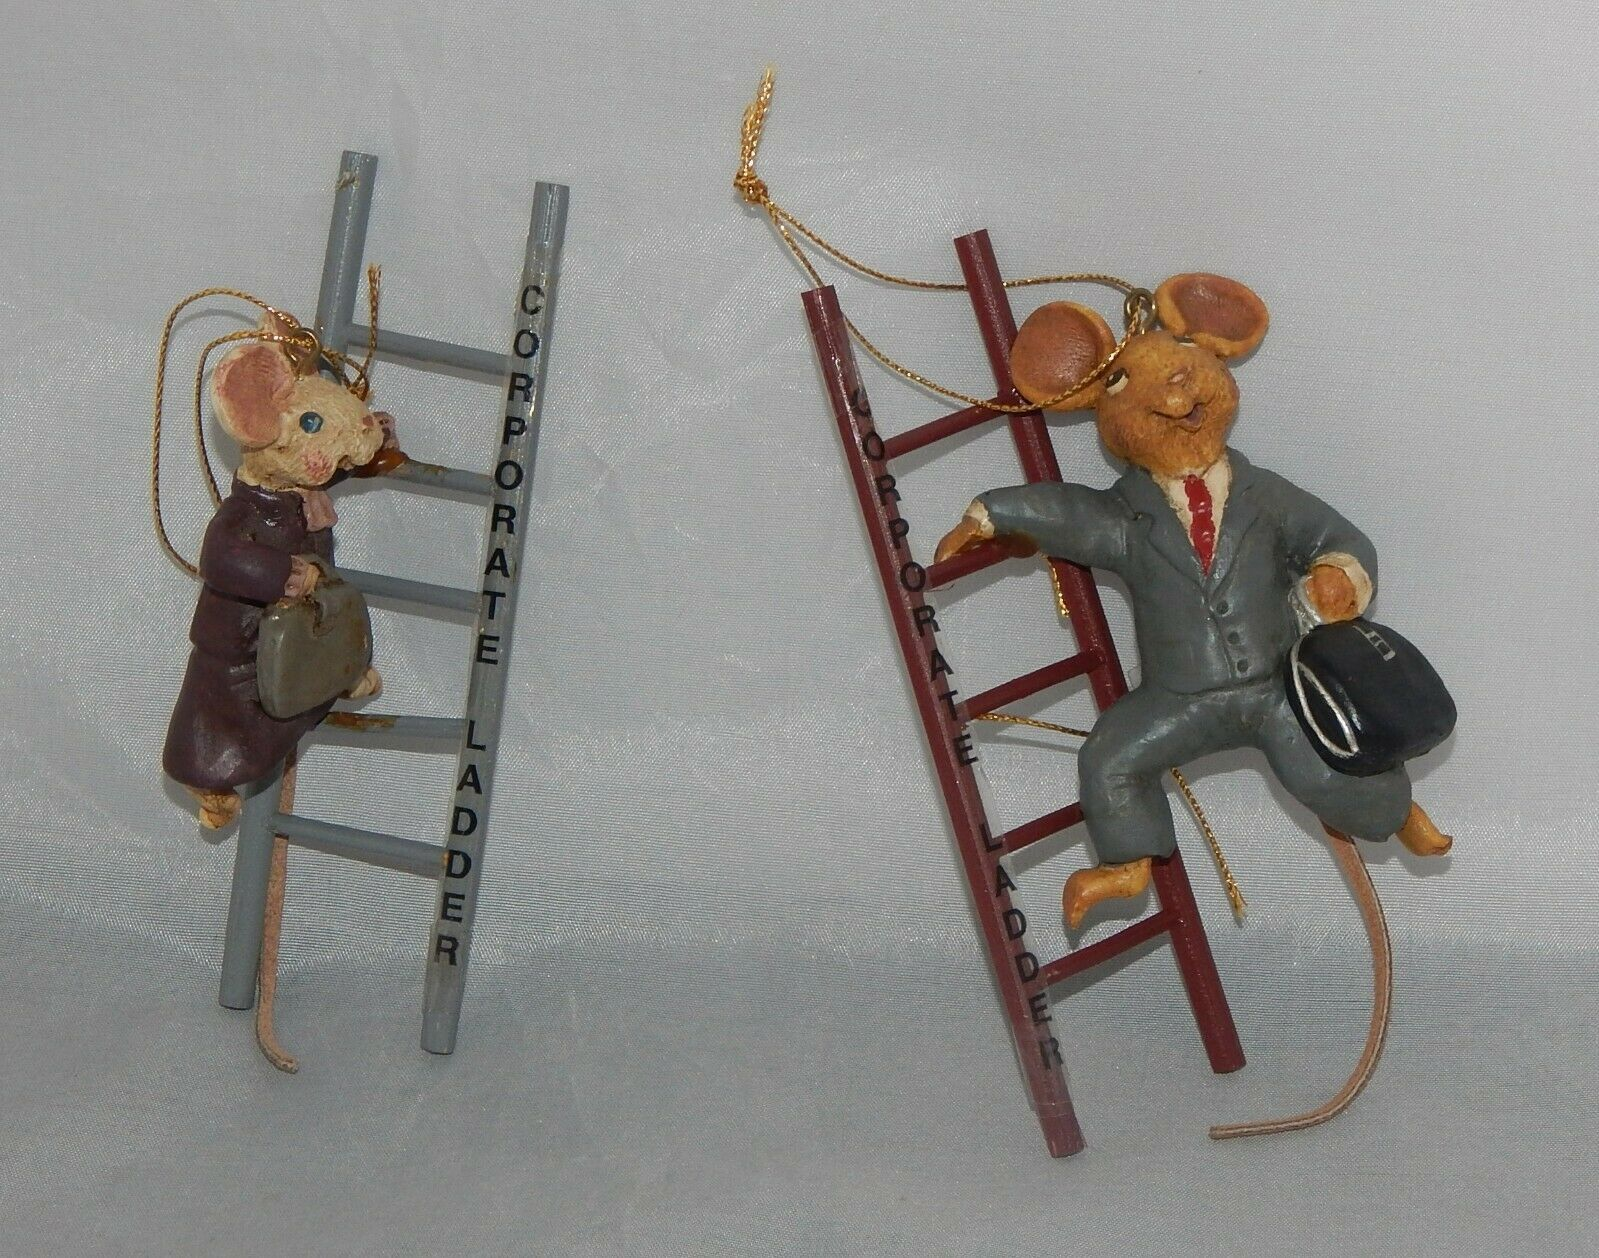 Primary image for 2 Kurt Adler Corporate Ladder Mice Ornaments Male and Female Mice